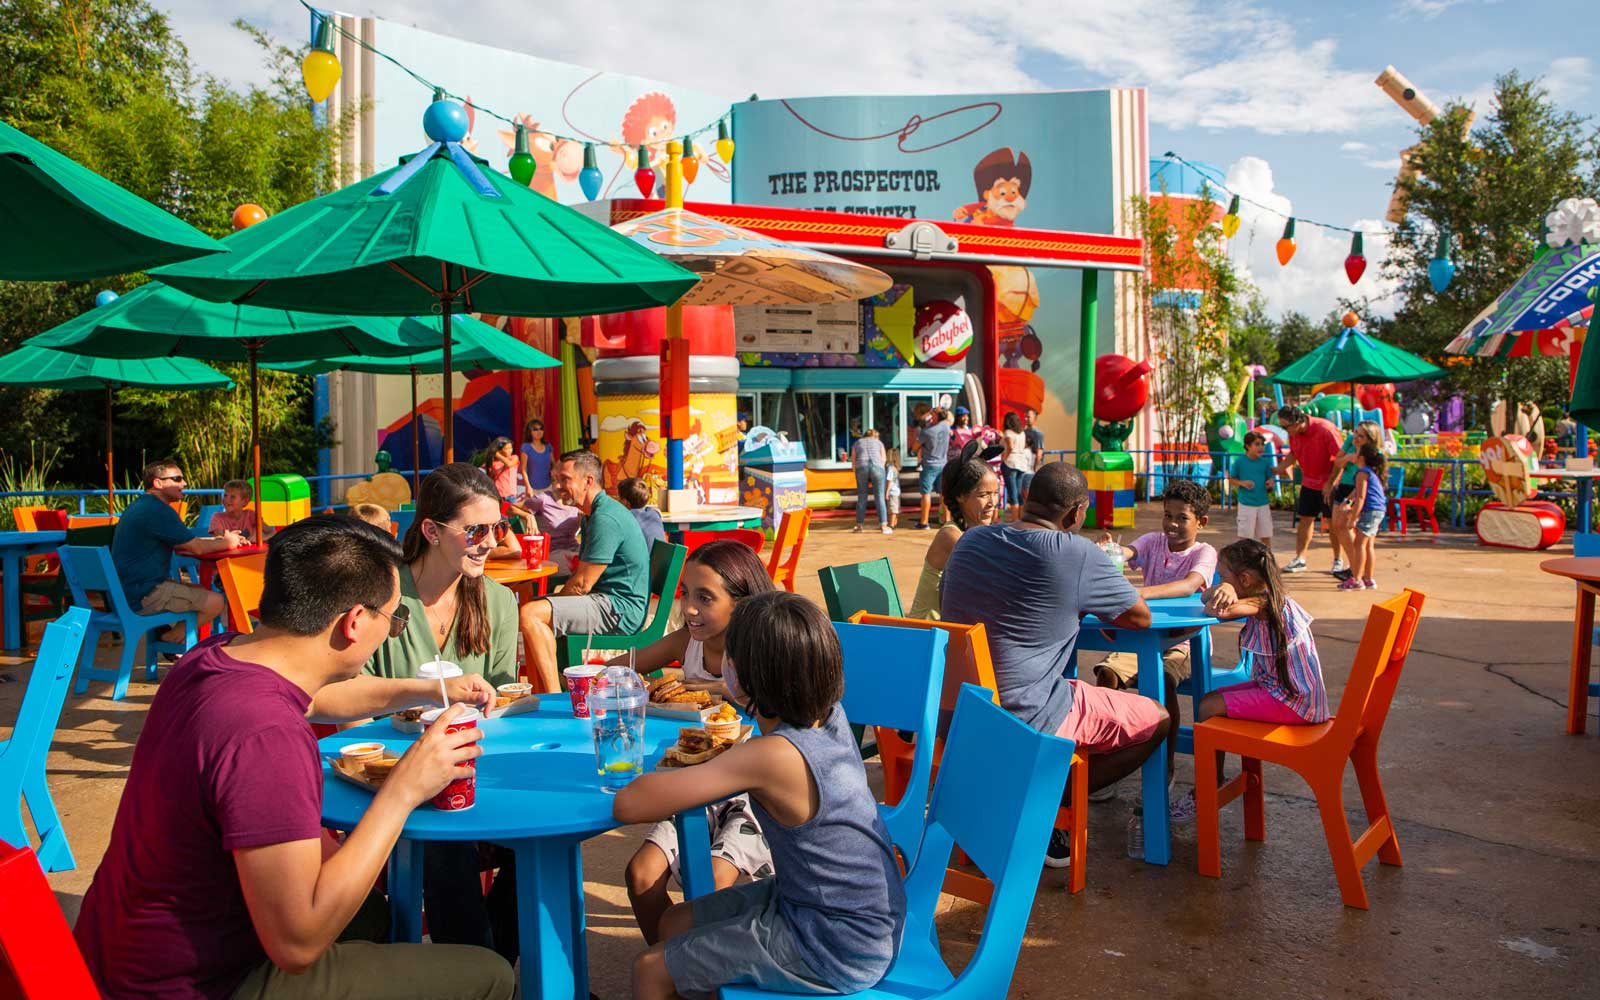 Disney Will Eliminate Plastic Straws From Its Parks by 2019